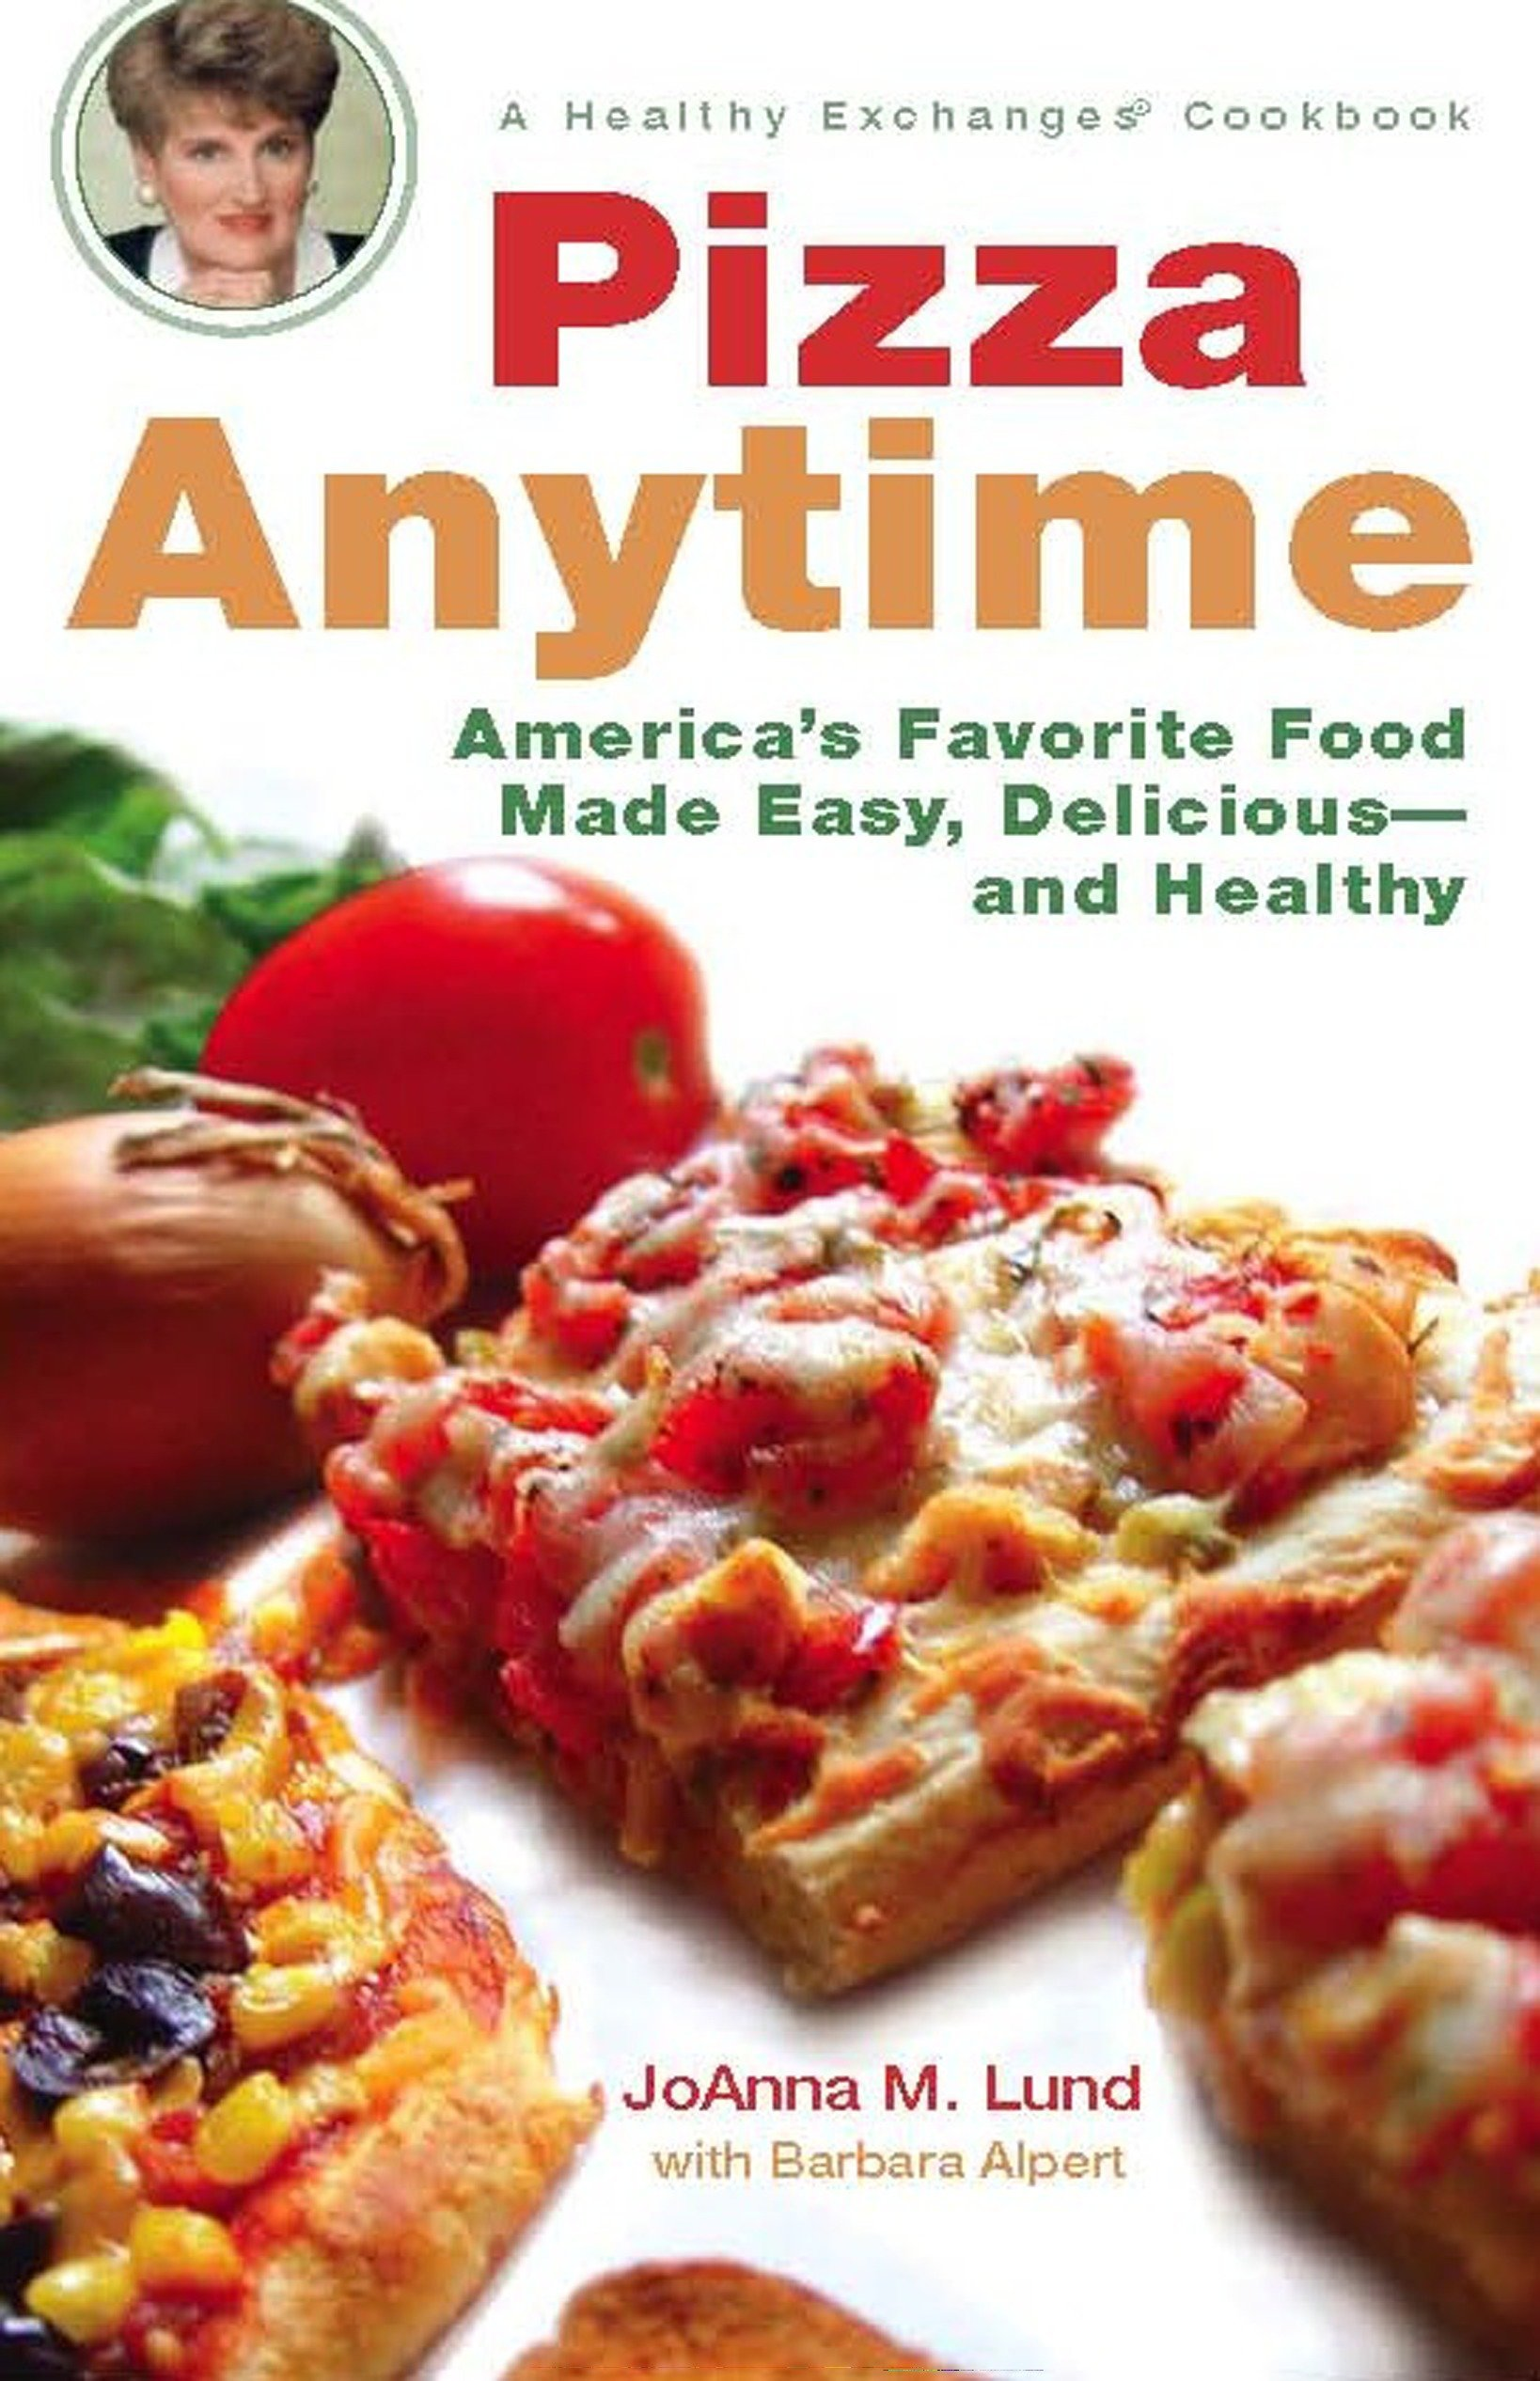 Pizza Anytime: A Healthy Exchanges Cookbook (Healthy Exchanges Cookbooks) PDF